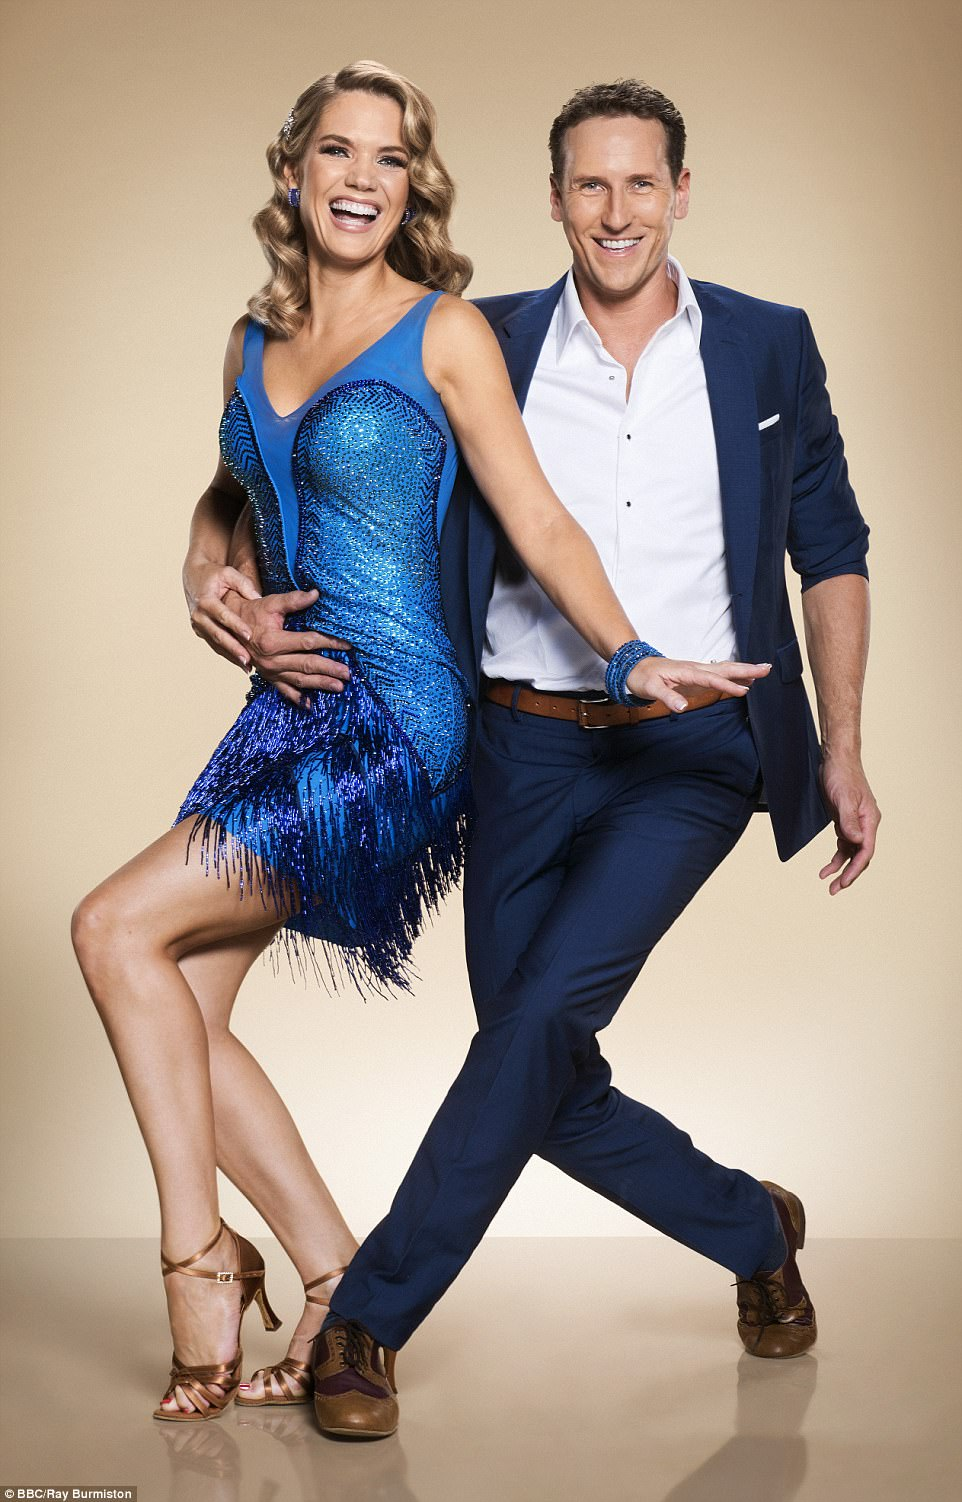 Off we go!Meanwhile Good Morning Britain's Charlotte Hawkins channeled her inner 1920s flapper girl in a fringed blue dress and glamorous tight curls, as she struck a pose from the Charleston with partner Brendan Cole